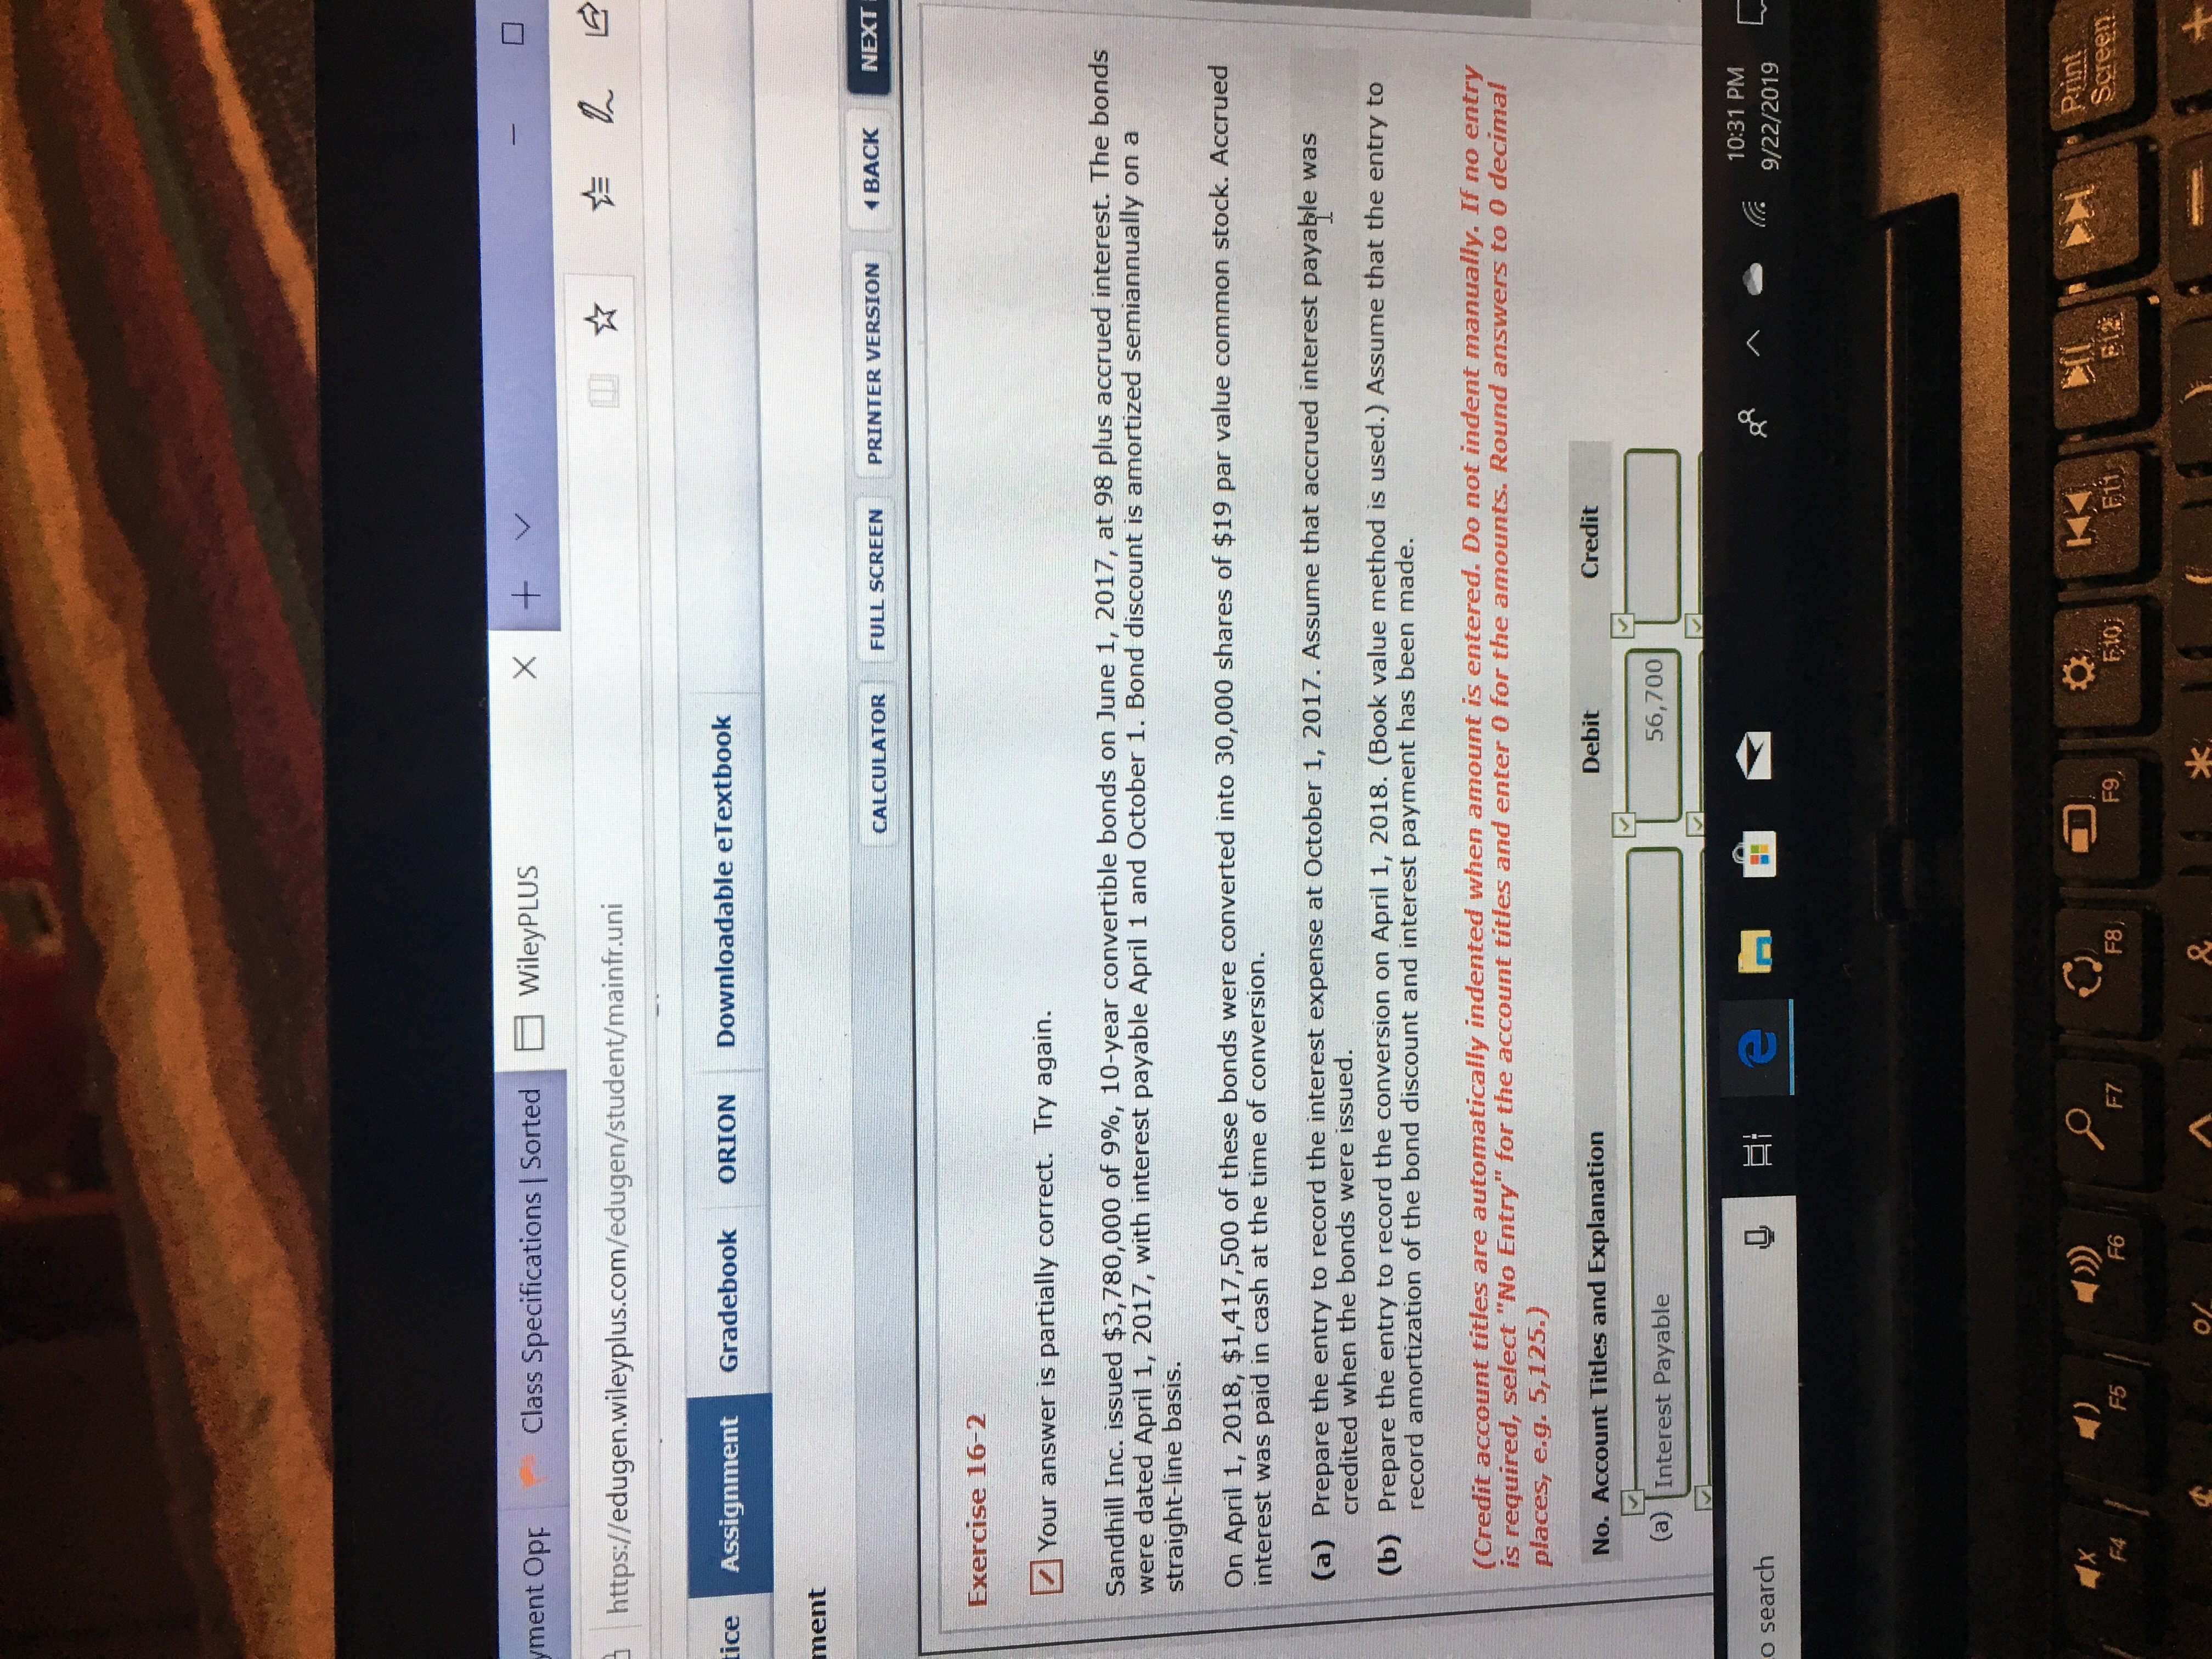 """X WileyPLUS Class Specifications   Sorted yment Opp LE https://edugen.wileyplus.com/edugen/student/mainfr.uni Downloadable eTextbook tice Gradebook ORION Assignment ment NEXT BACK PRINTER VERSION FULL SCREEN CALCULATOR Exercise 16-2 Your answer is partially correct. Try again. Sandhill Inc. issued $3,780,000 of 9%, 10-year convertible bonds on June 1, 2017, at 98 plus accrued interest. The bonds were dated April 1, 2017, with interest payable April 1 and October 1. Bond discount is amortized semiannually on a straight-line basis. On April 1, 2018, $1,417,500 of these bonds were converted into 30,000 shares of $19 par value common stock. Accrued interest was paid in cash at the time of conversion. (a) Prepare the entry to record the interest expense at October 1, 2017. Assume that accrued interest payable was credited when the bonds were issued. (b) Prepare the entry to record the conversion on April 1, 2018. (Book value method is used.) Assume that the entry to record amortization of the bond discount and interest payment has been made. (Credit account titles are automatically indented when amount is entered. Do not indent manually. If no entry is required, select """"No Entry"""" for the account titles and enter 0 for the amounts. Round answers to 0 decimal places, e.g. 5,125.) Credit Debit No. Account Titles and Explanation 56,700 (a) Interest Payable 10:31 PM o search 9/22/2019 Print Screen F9 E12 E10 F8 F7 F6 F5 F4 k & +"""